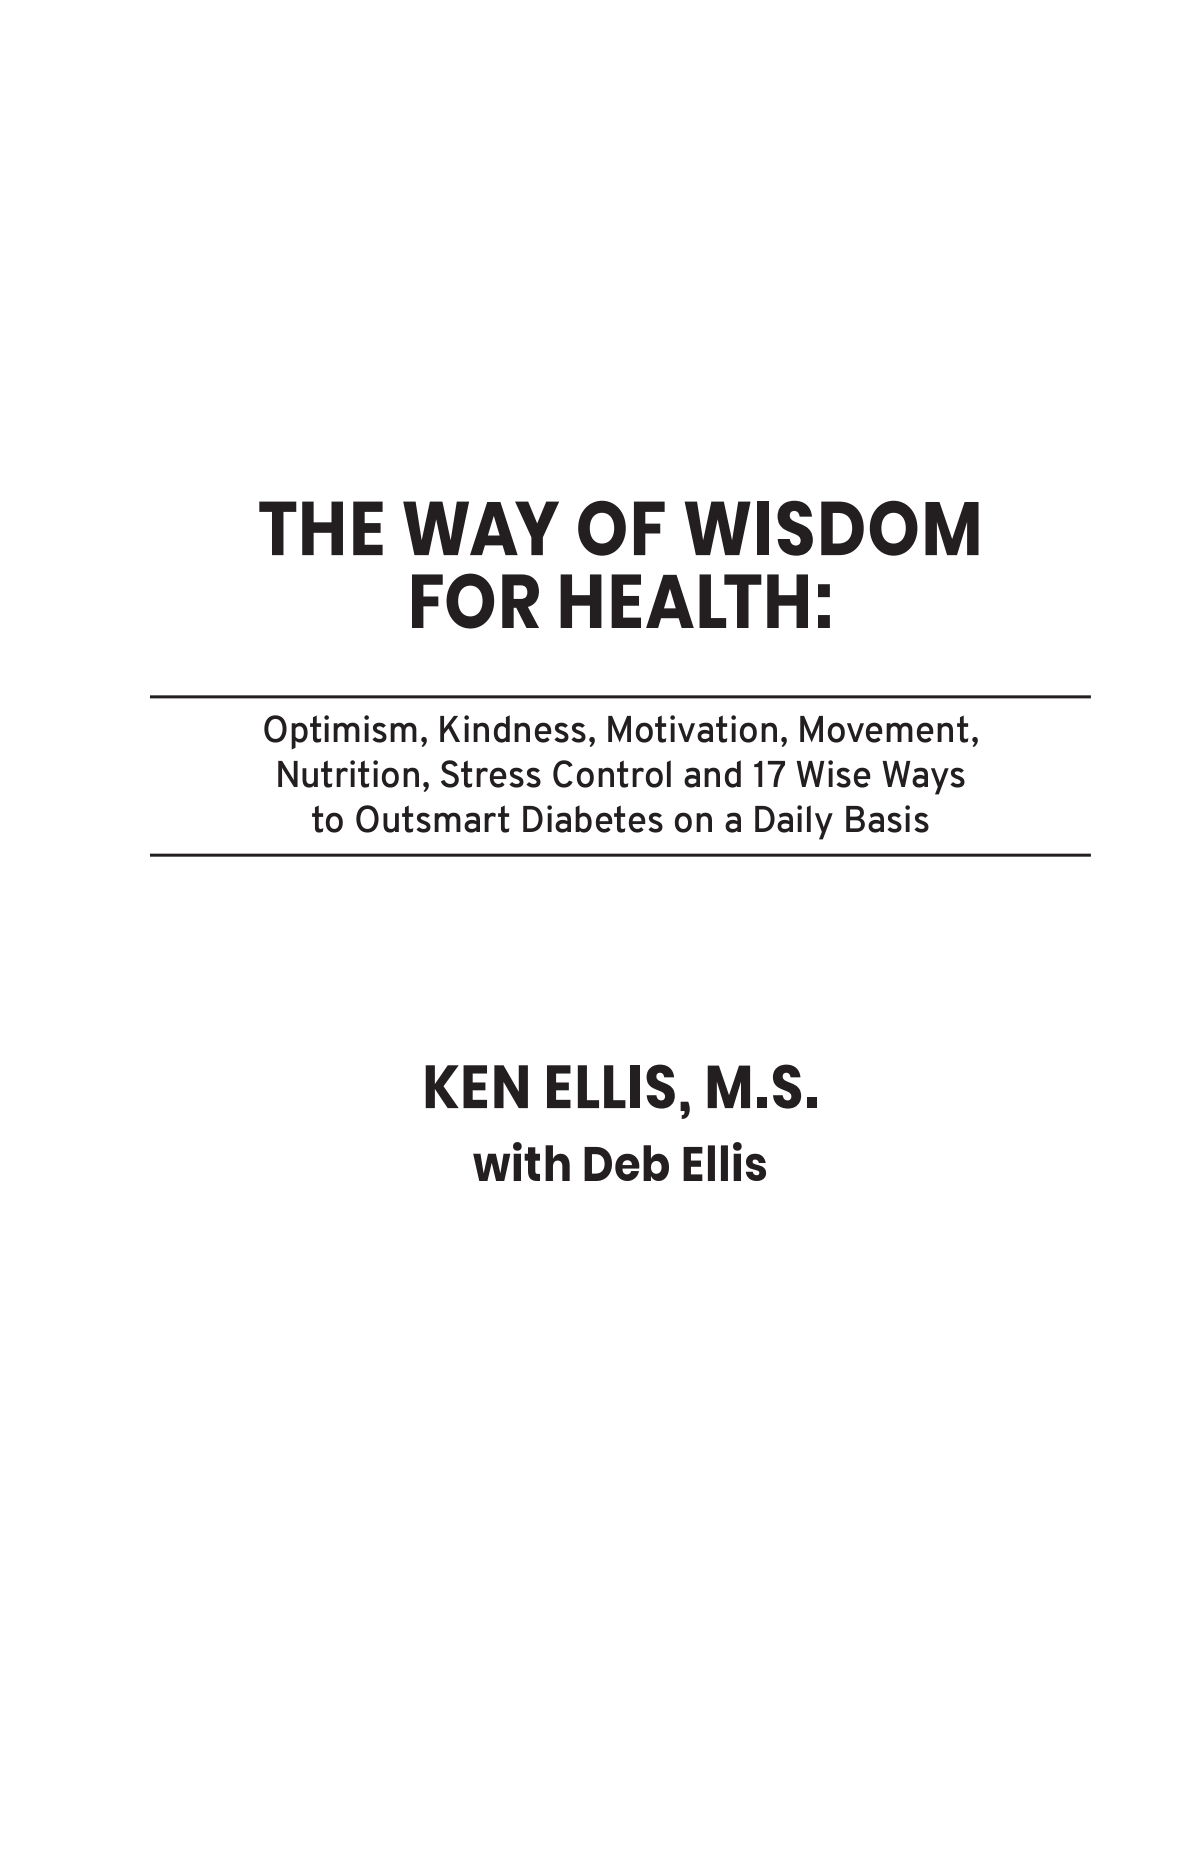 Revisions to The Way of Wisdom for Health